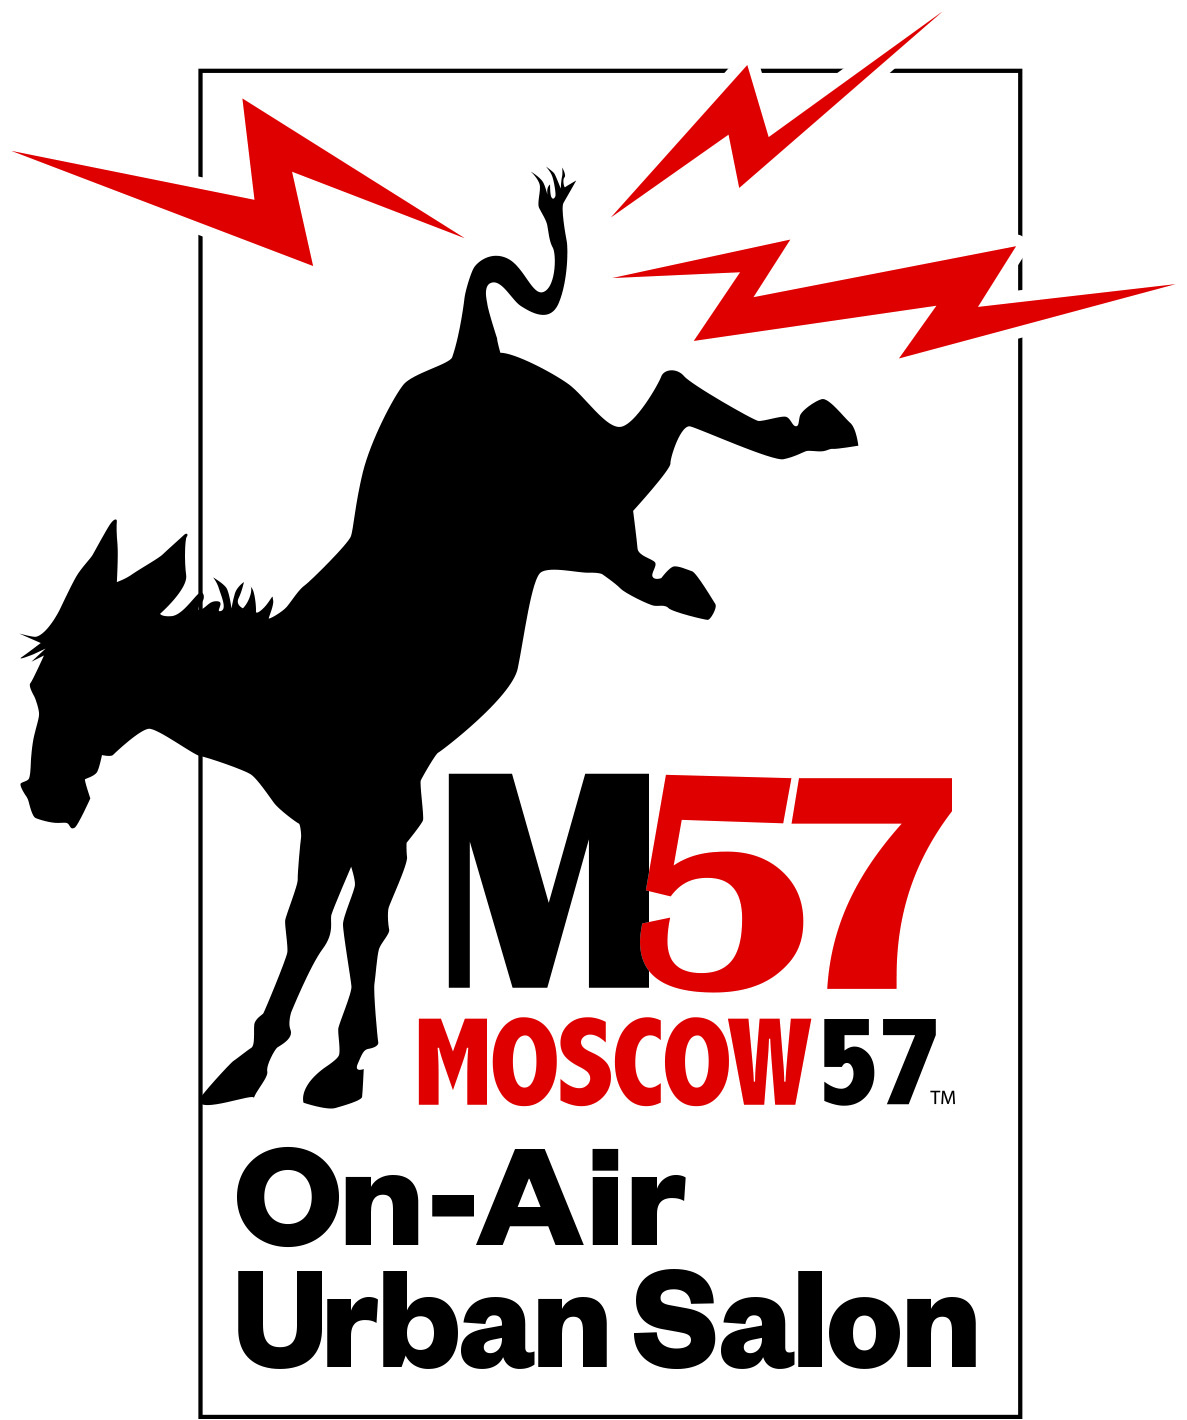 Moscow57